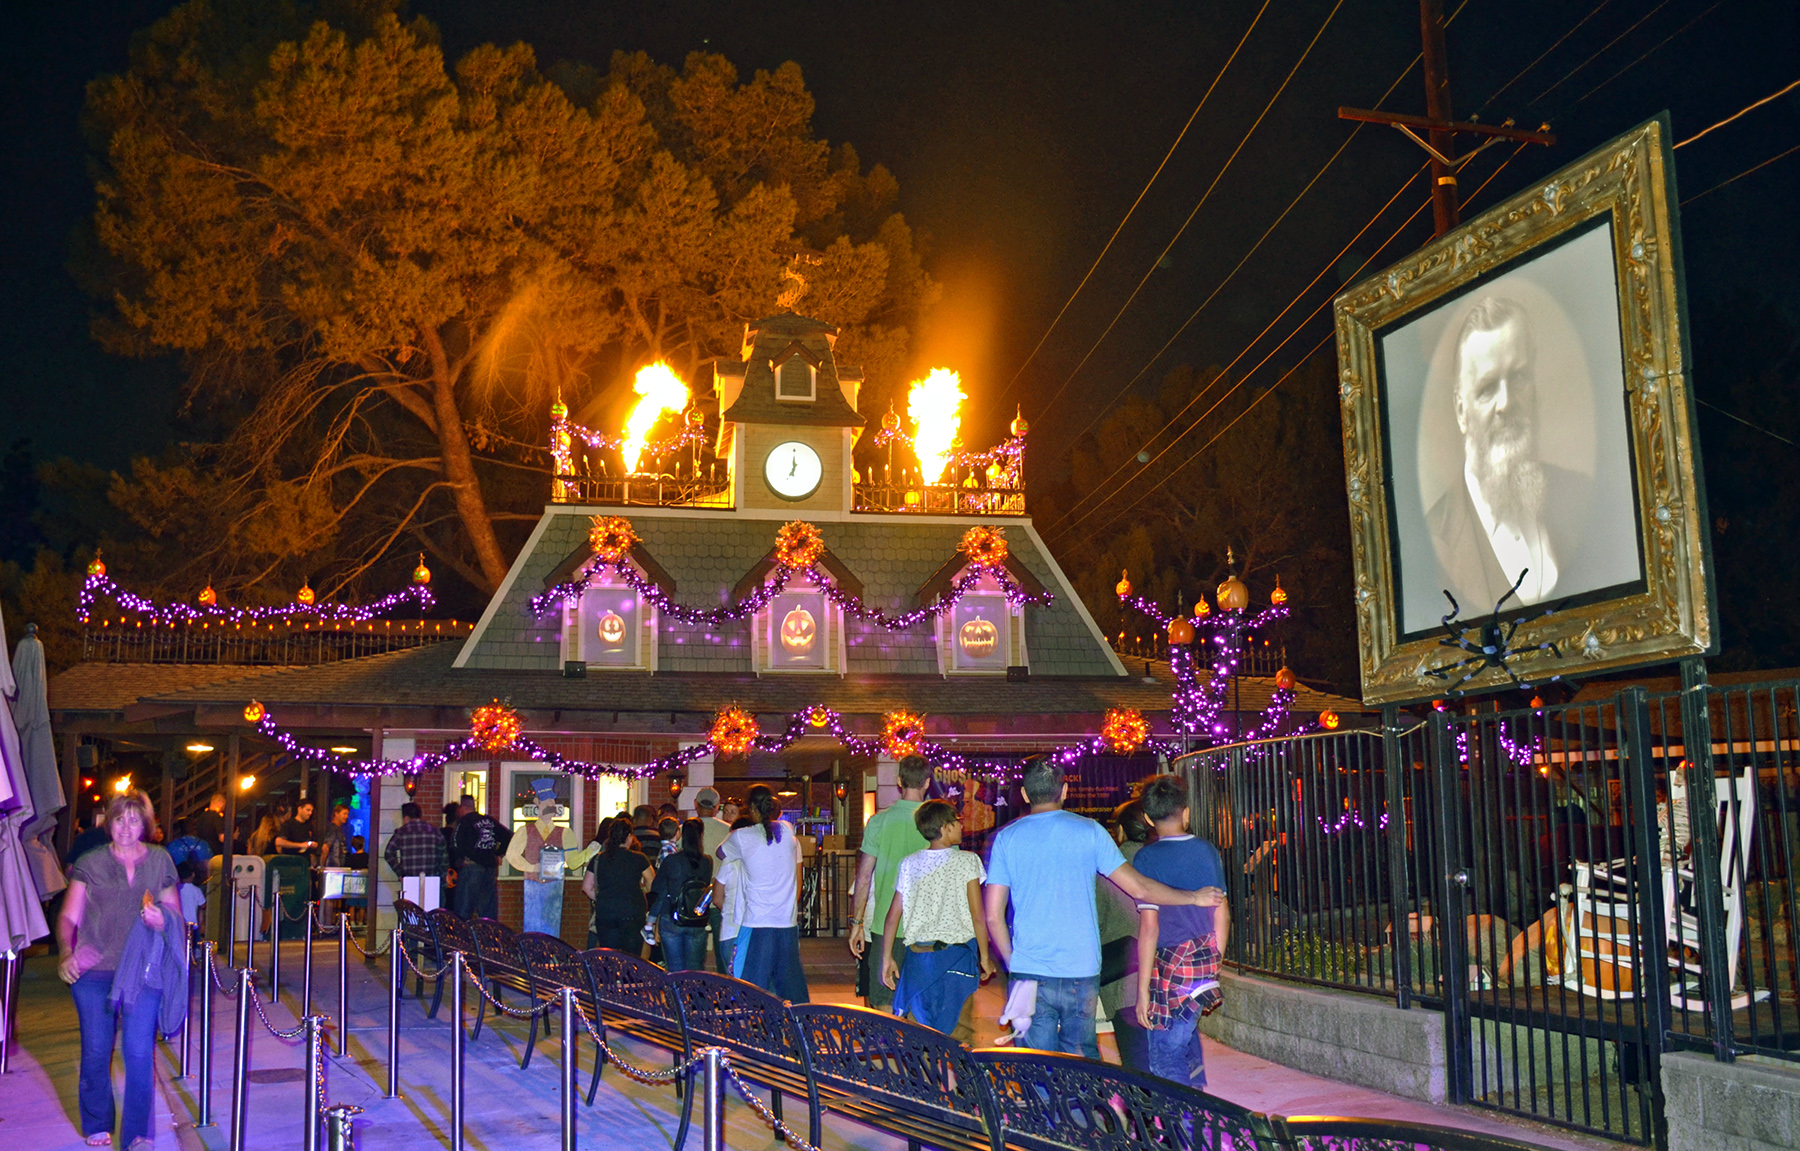 Good Upcoming Events | Halloween Ghost Train In Griffith Park ...